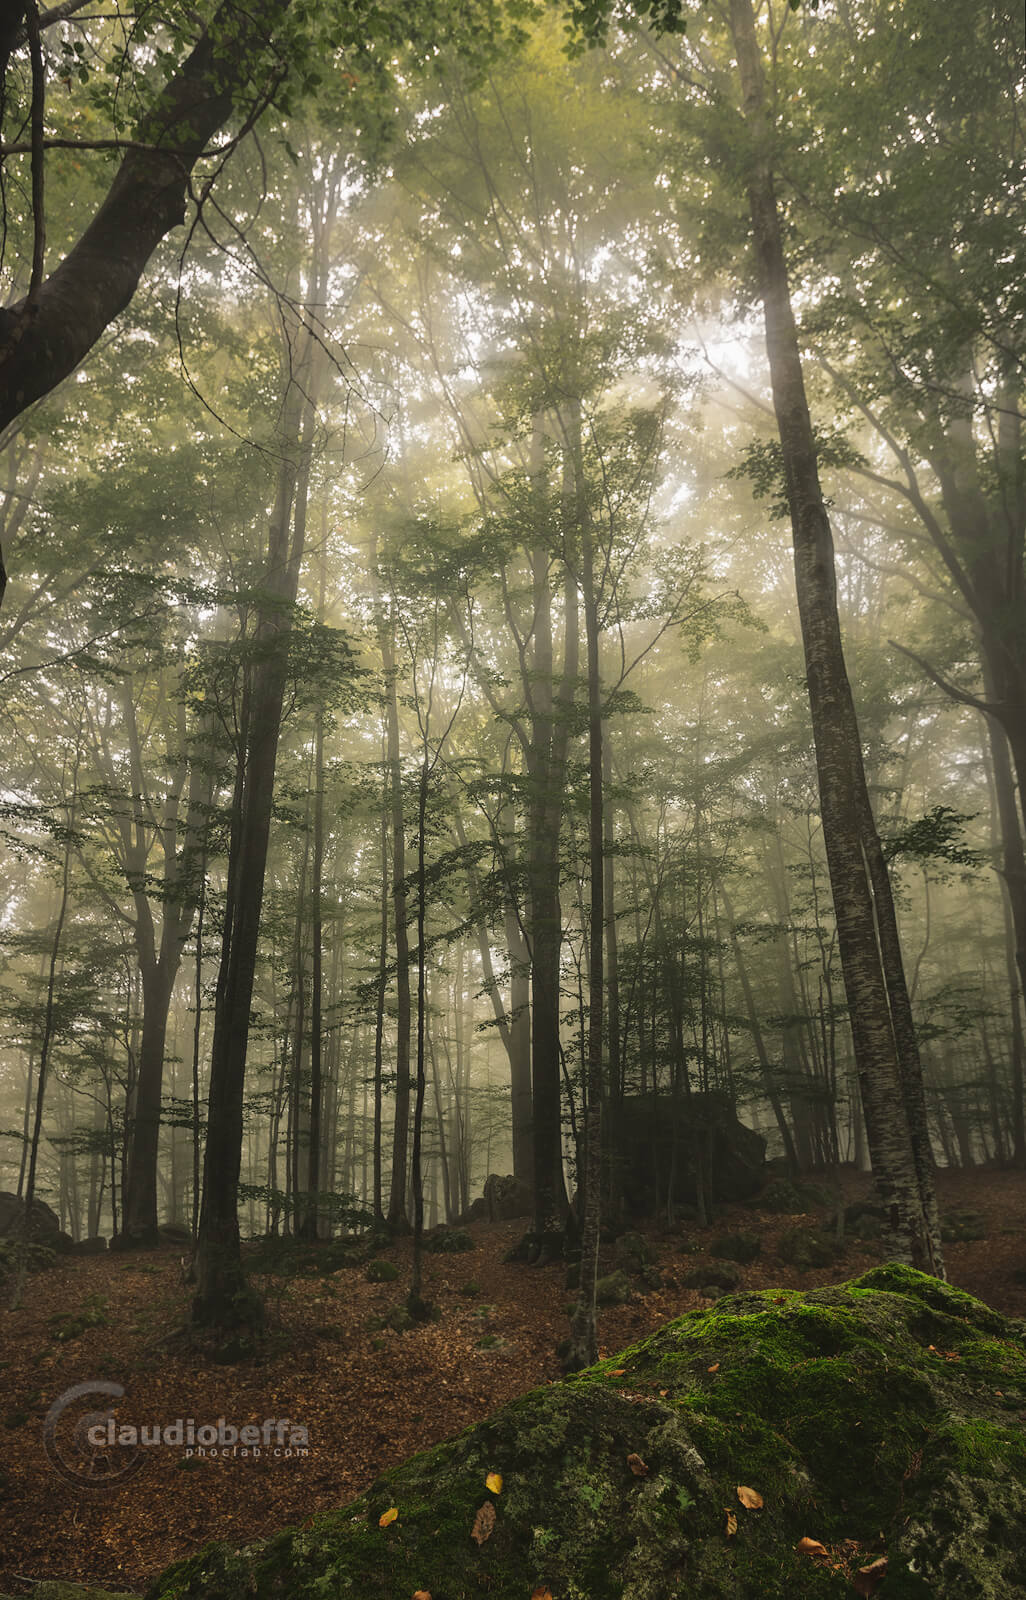 Realm, Forest, Mist, Fog, Light, Green, Mout Amiata, Ancient, Italy, Tuscany